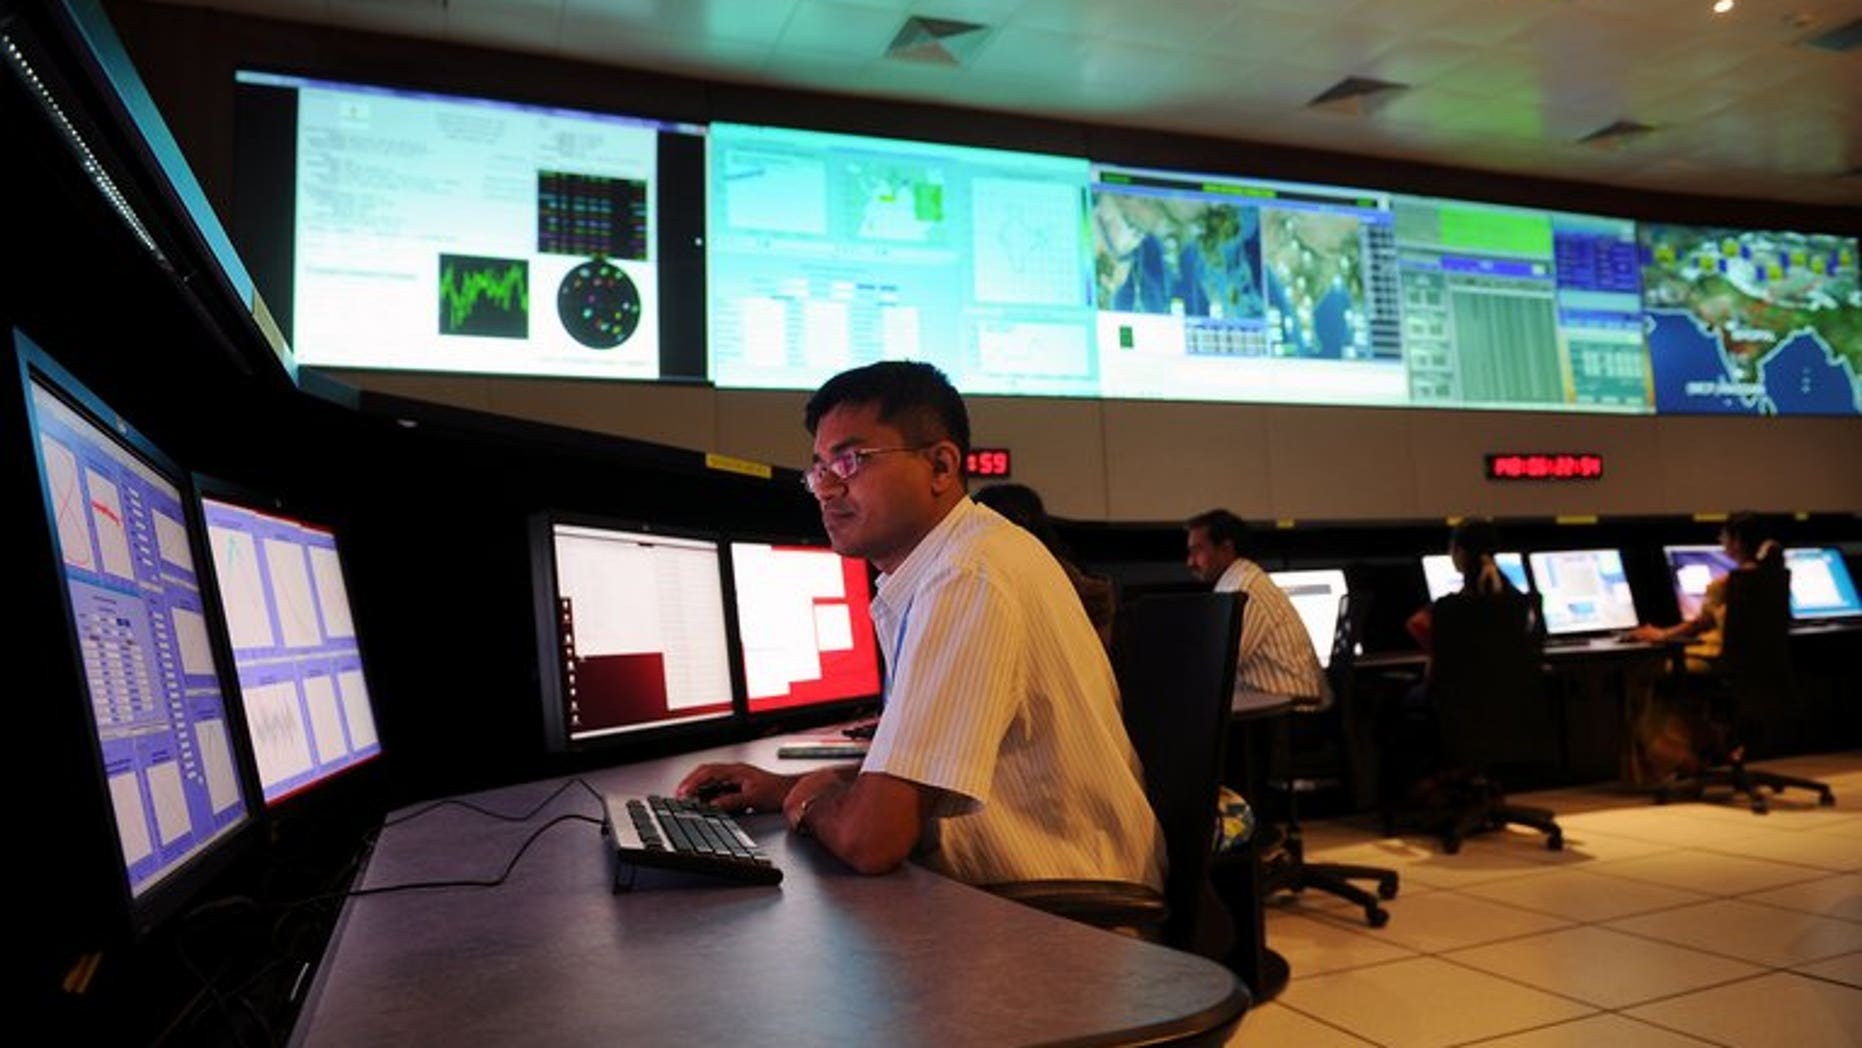 Scientists from the Indian Space Research Organisation (ISRO) work in the Indian Regional Navigational Satellite System (IRNSS) control room, at the Indian Deep Space Network (IDSN), in Byalalu village, about 50 km from Bangalore, on May 28, 2013. India will on Monday launch the first stage of IRNSS which will eventually provide services both to civilians and the military.